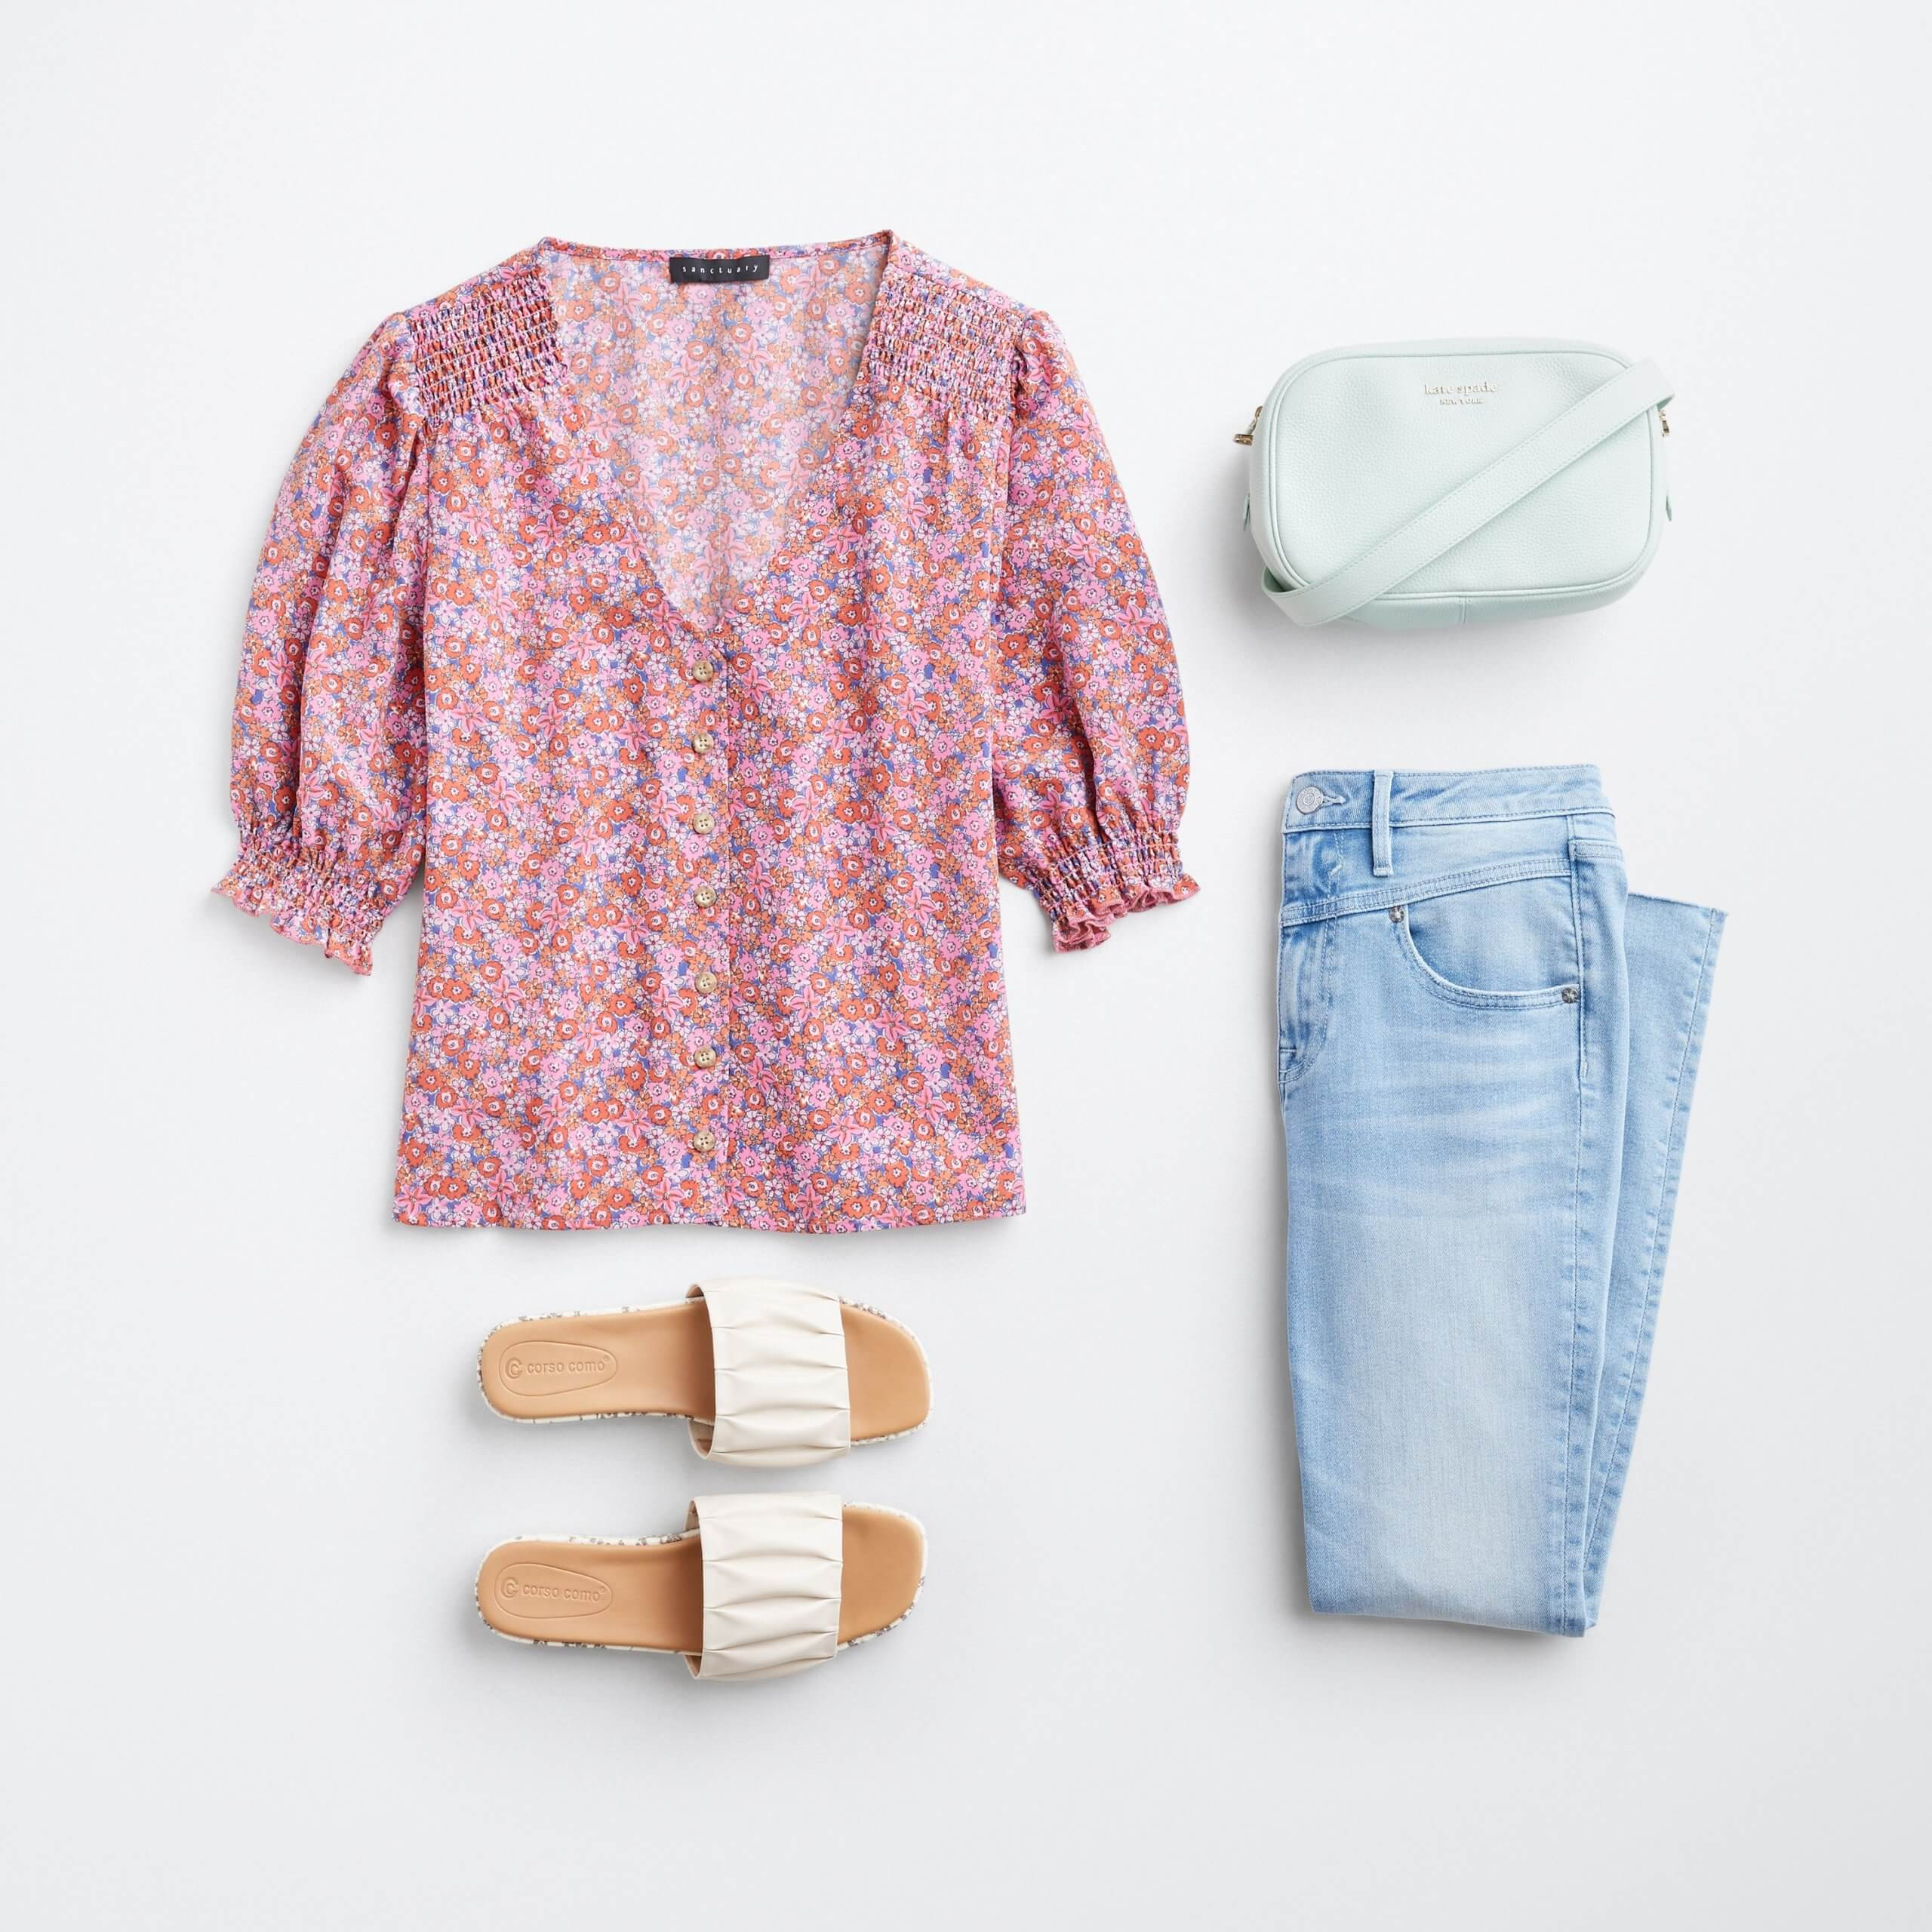 Stitch Fix Women's outfit laydown featuring multi-colored floral print top with mint green crossbody bag, light blue jeans and white slide sandals.